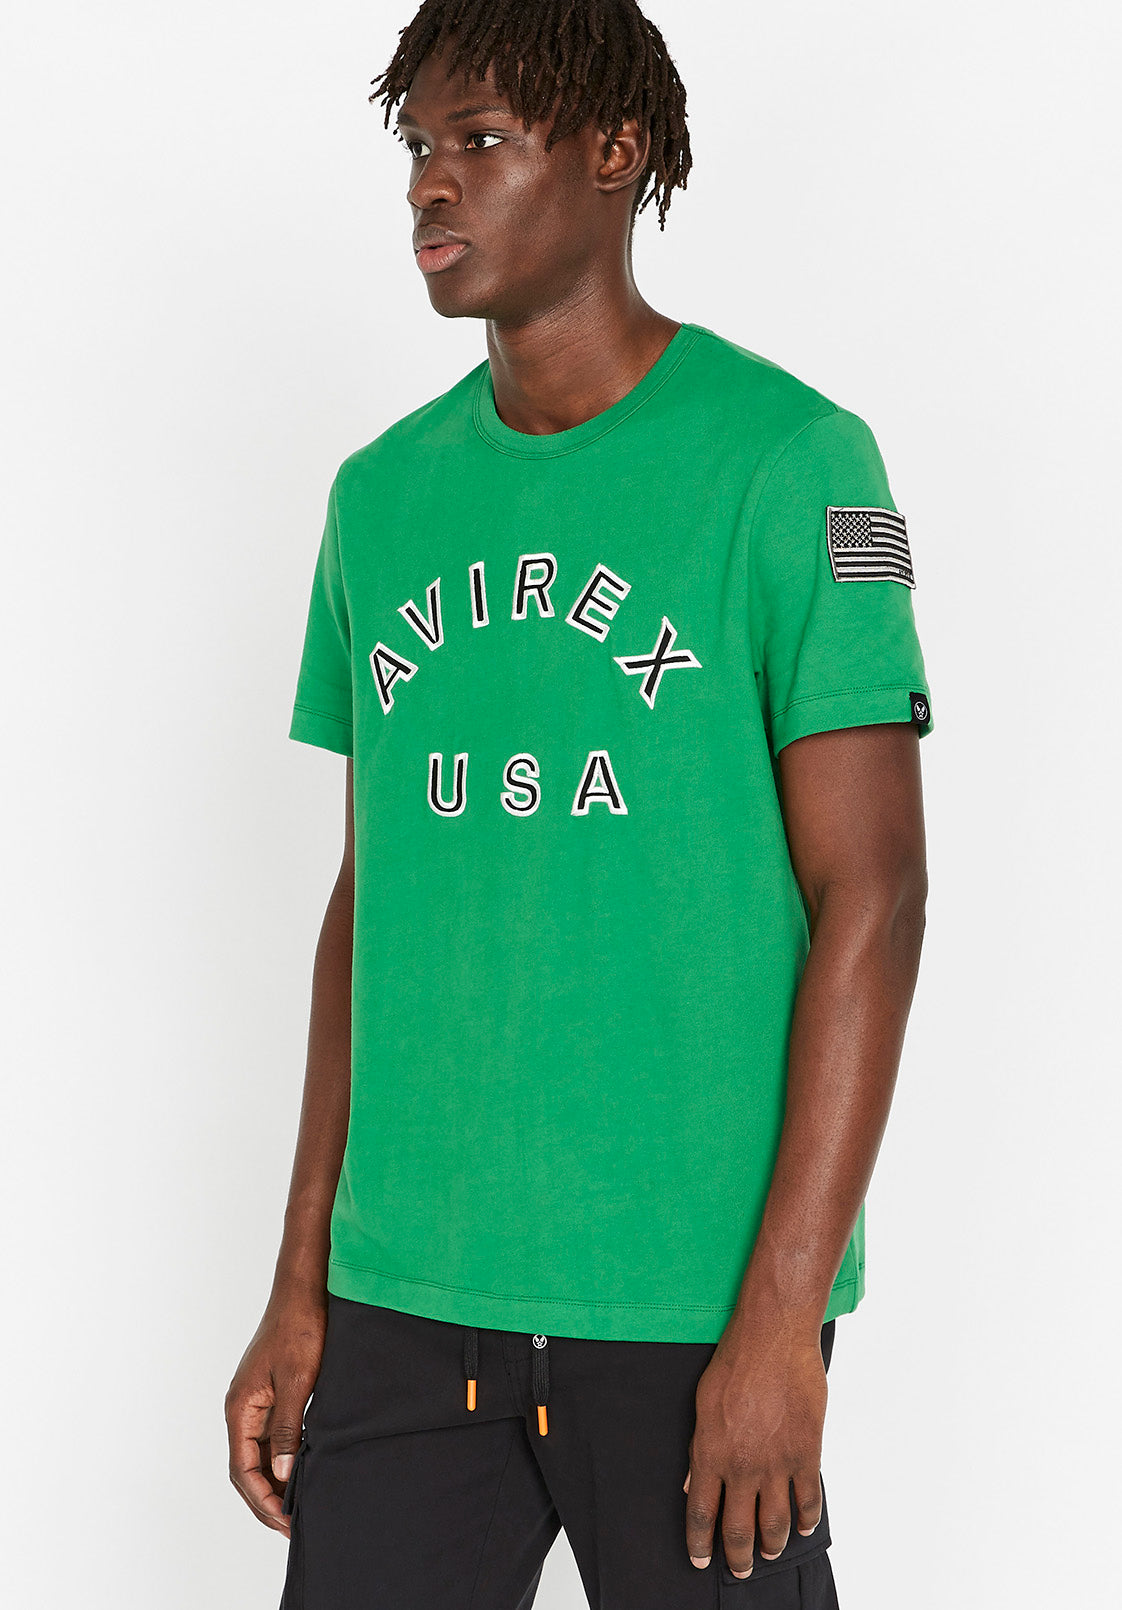 Side view of men wearing a green t-shirt with Avirex USA embroidery in black & white on front chest paired and USA flag patch on left arm